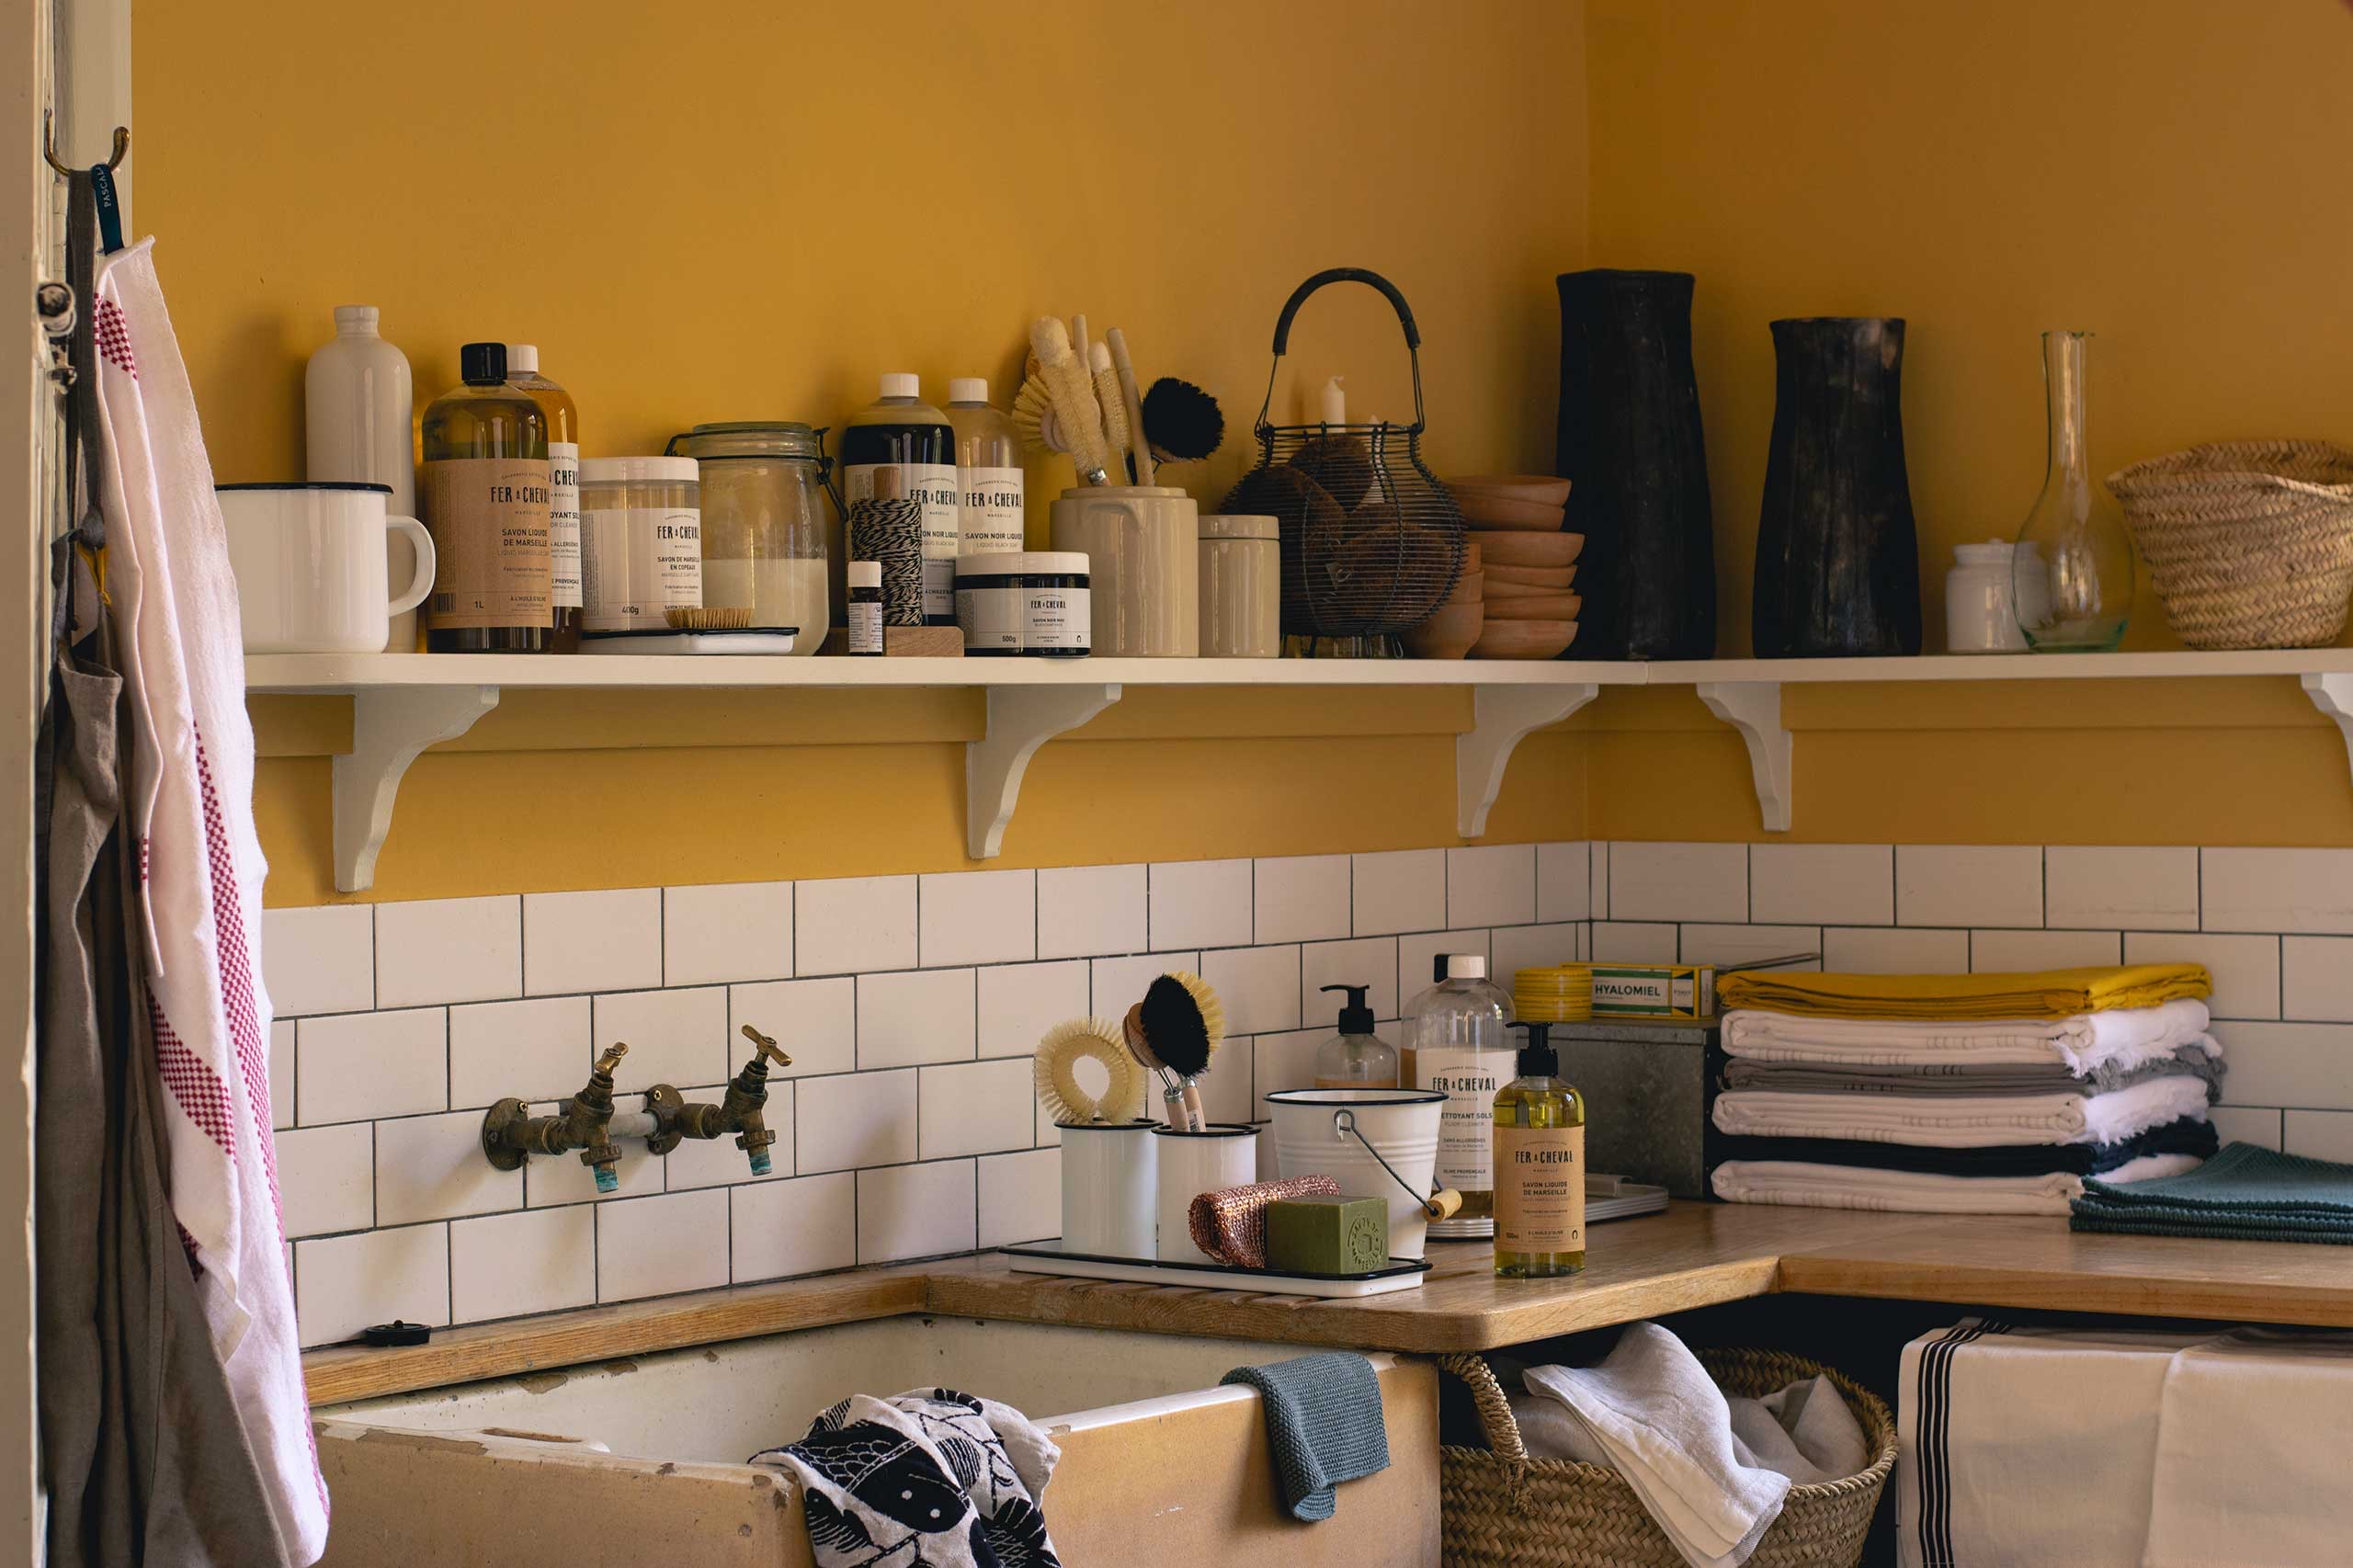 A kitchen showing homeware and soft furnishing from Pascale Store